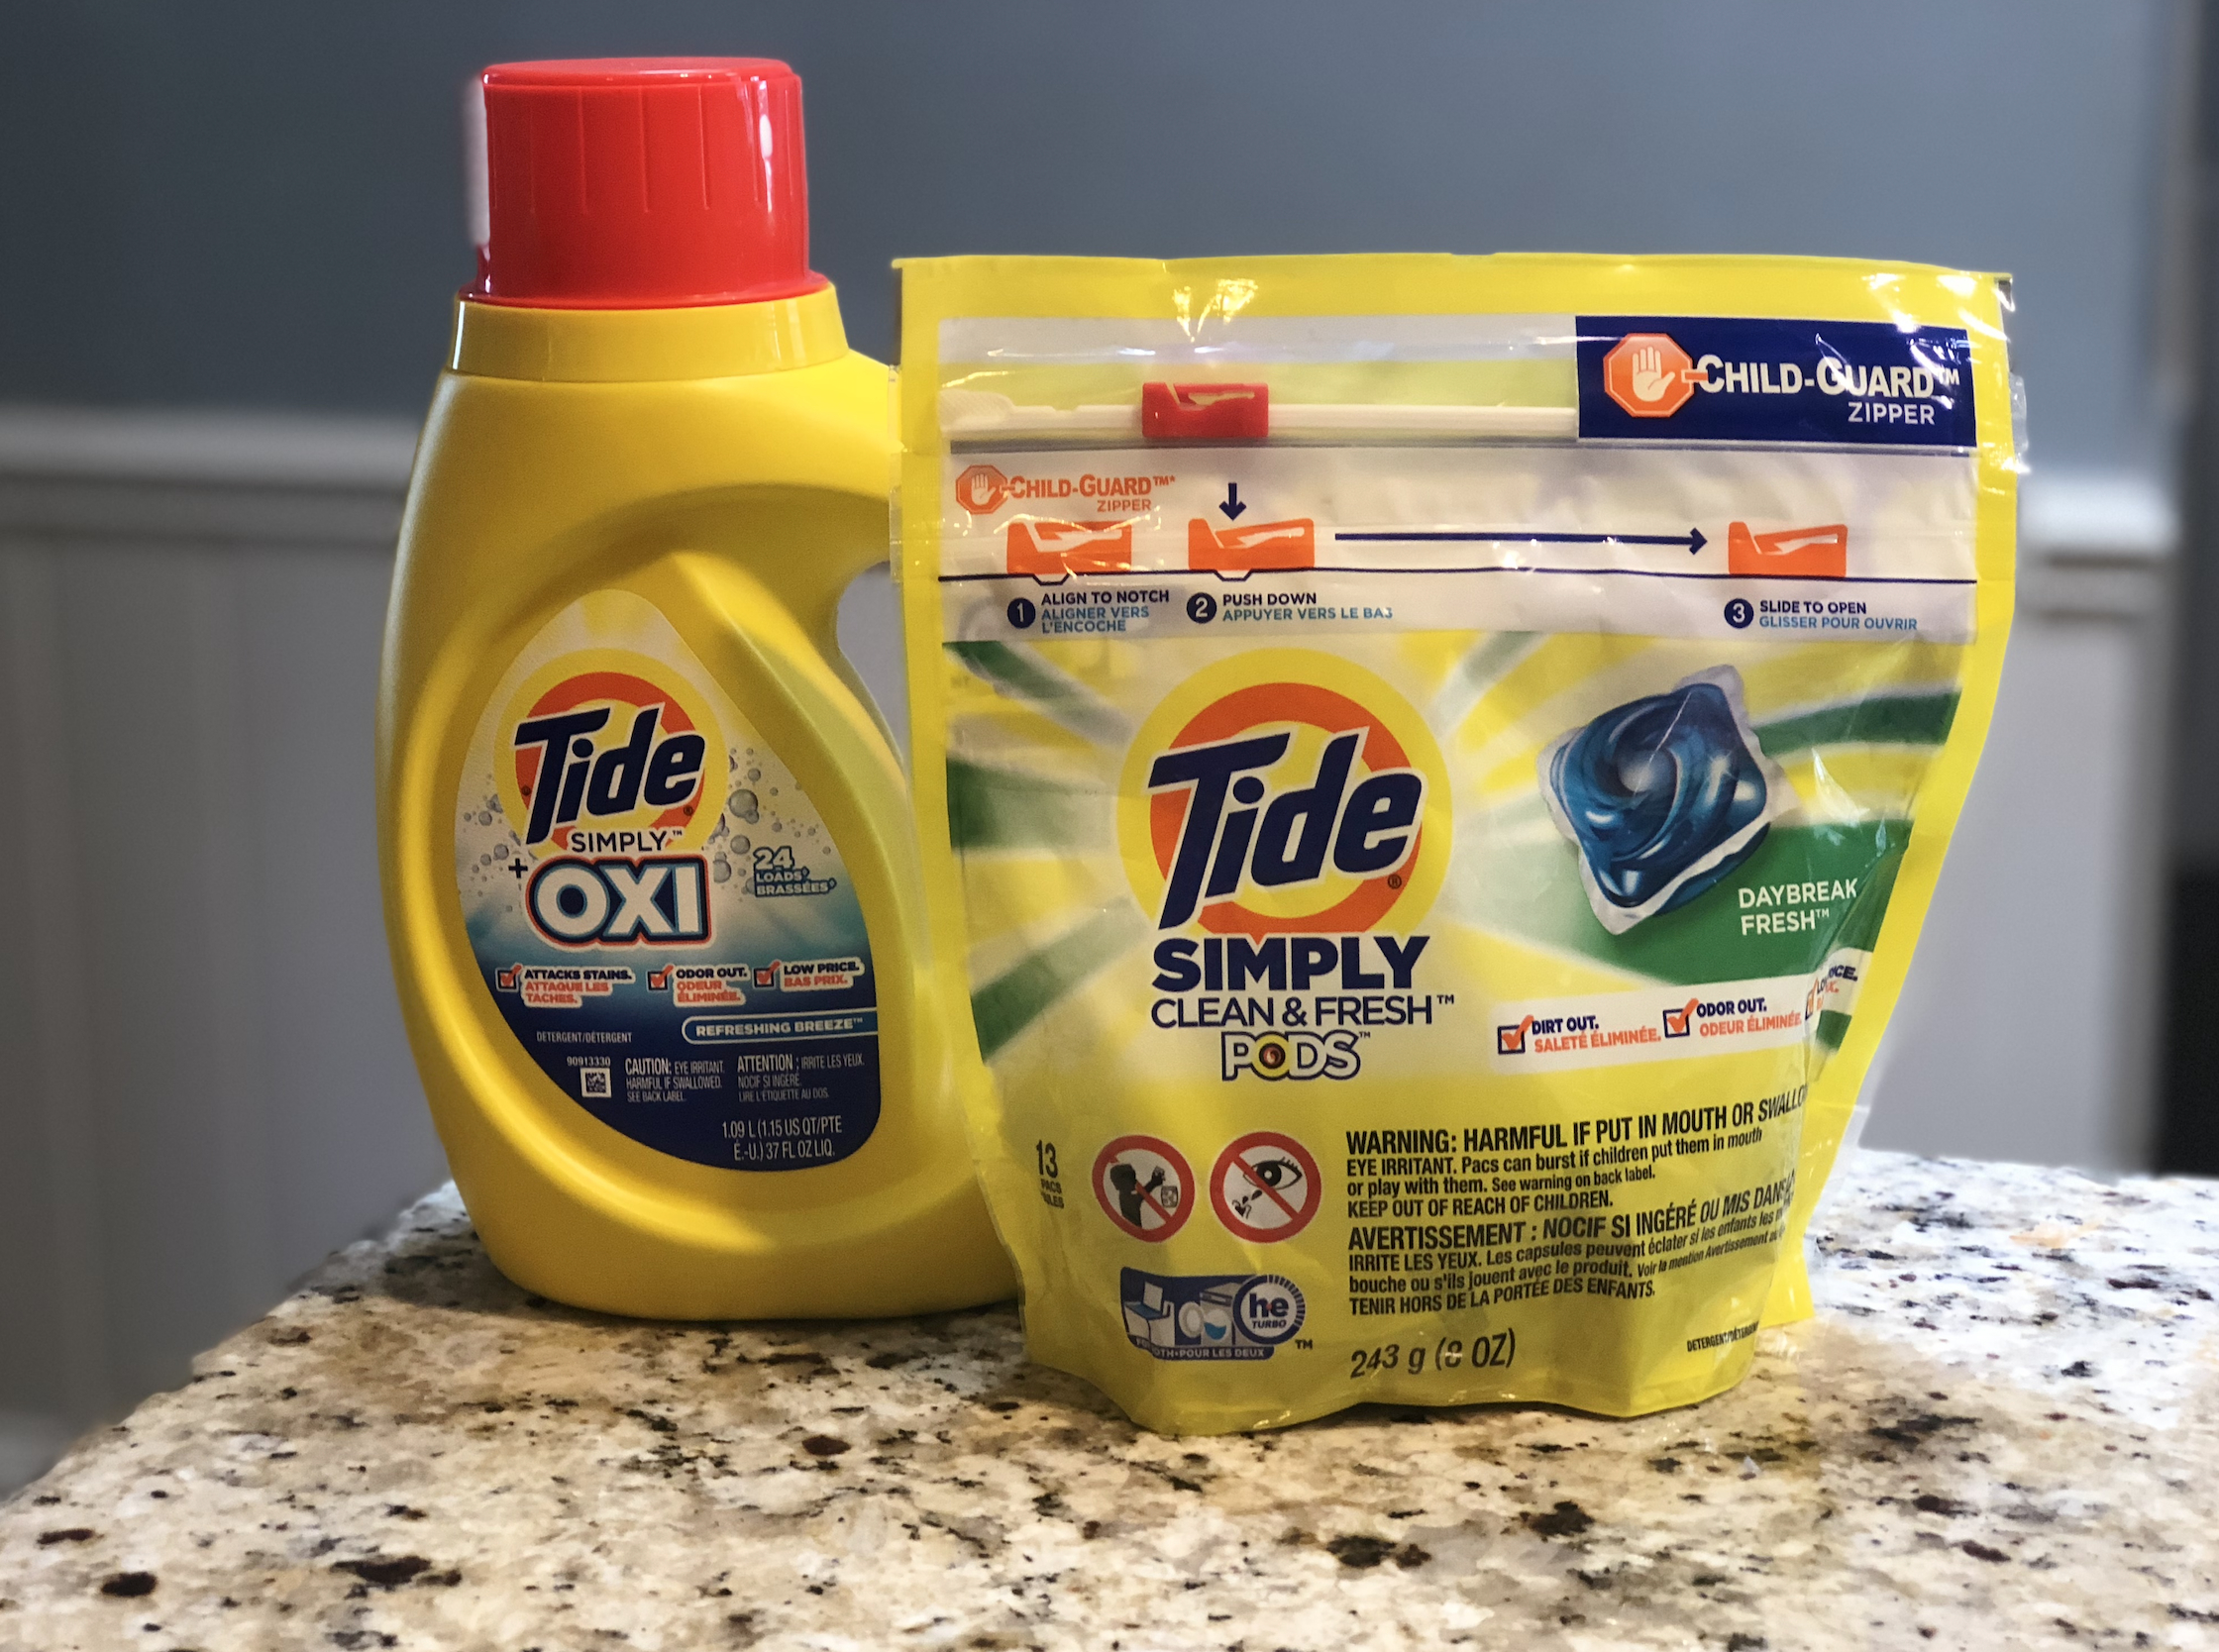 Tide Simply Coupons + Deals - Moola Saving Mom - Free Printable Tide Simply Coupons